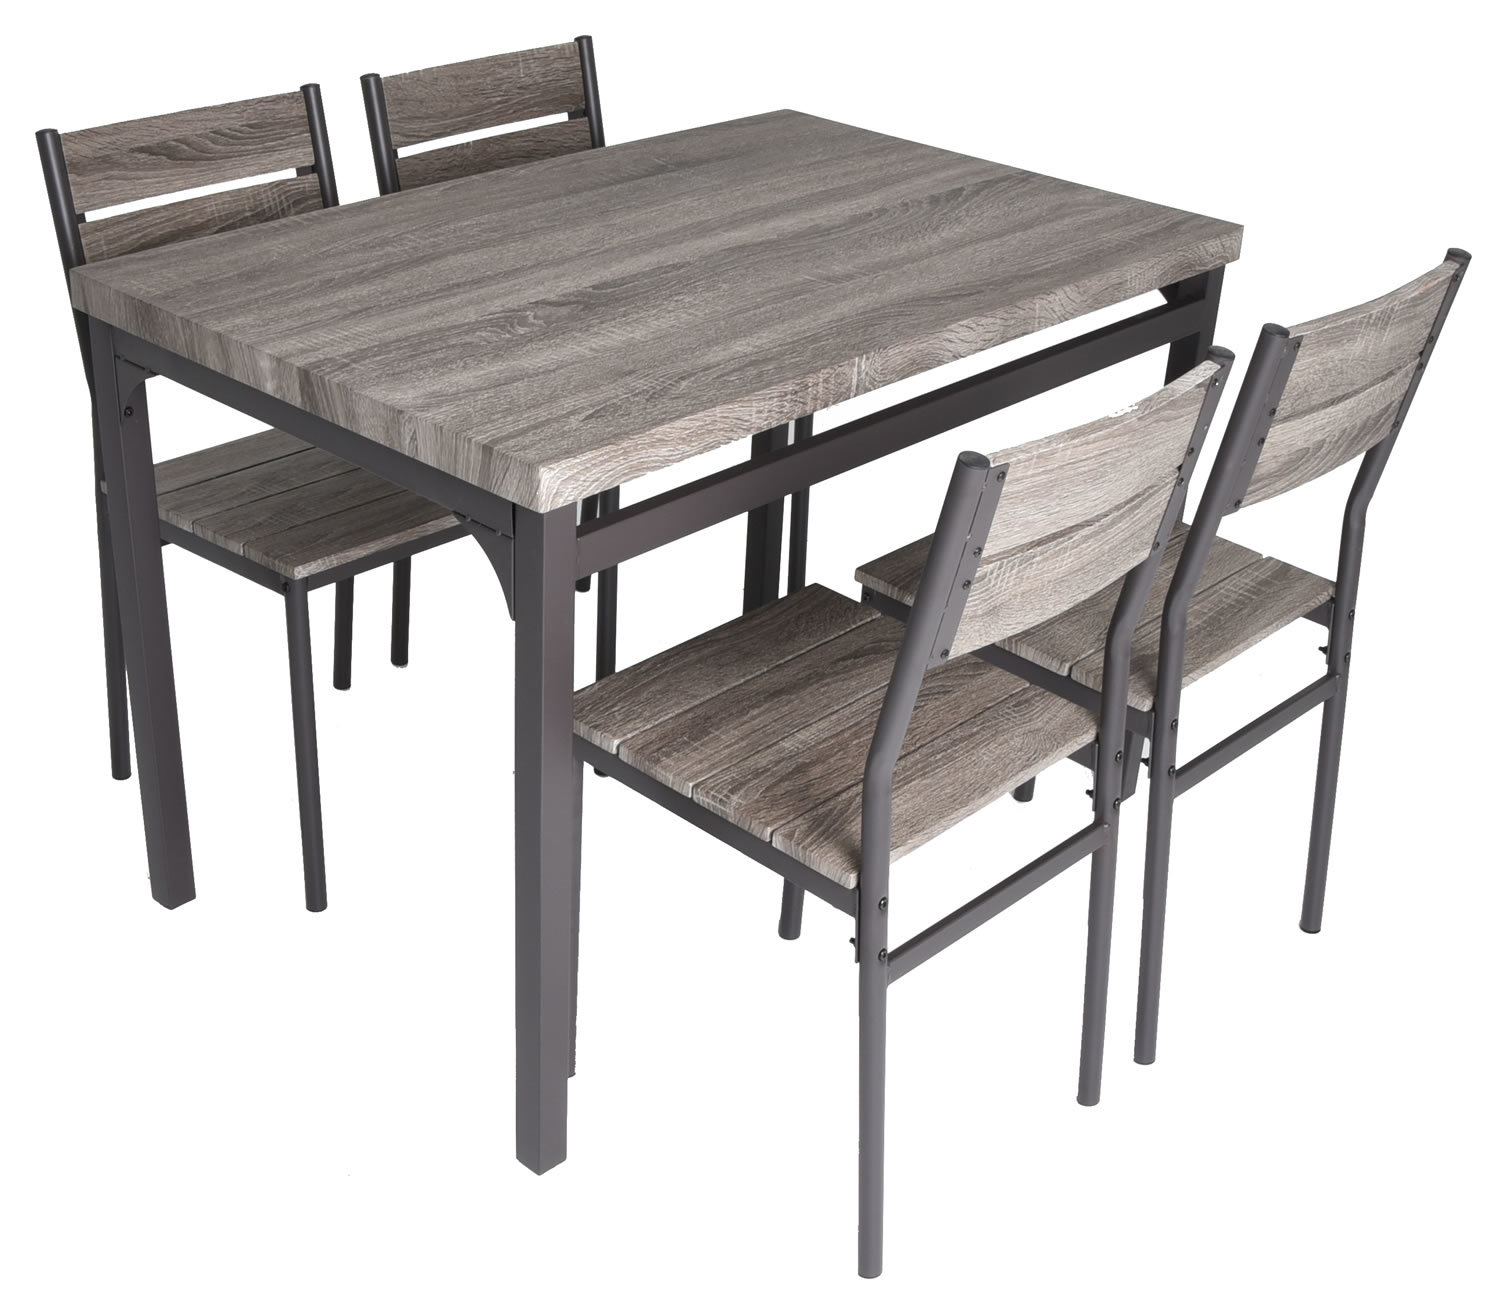 Emmeline 5 Piece Breakfast Nook Dining Set For 2017 Lightle 5 Piece Breakfast Nook Dining Sets (Image 8 of 20)